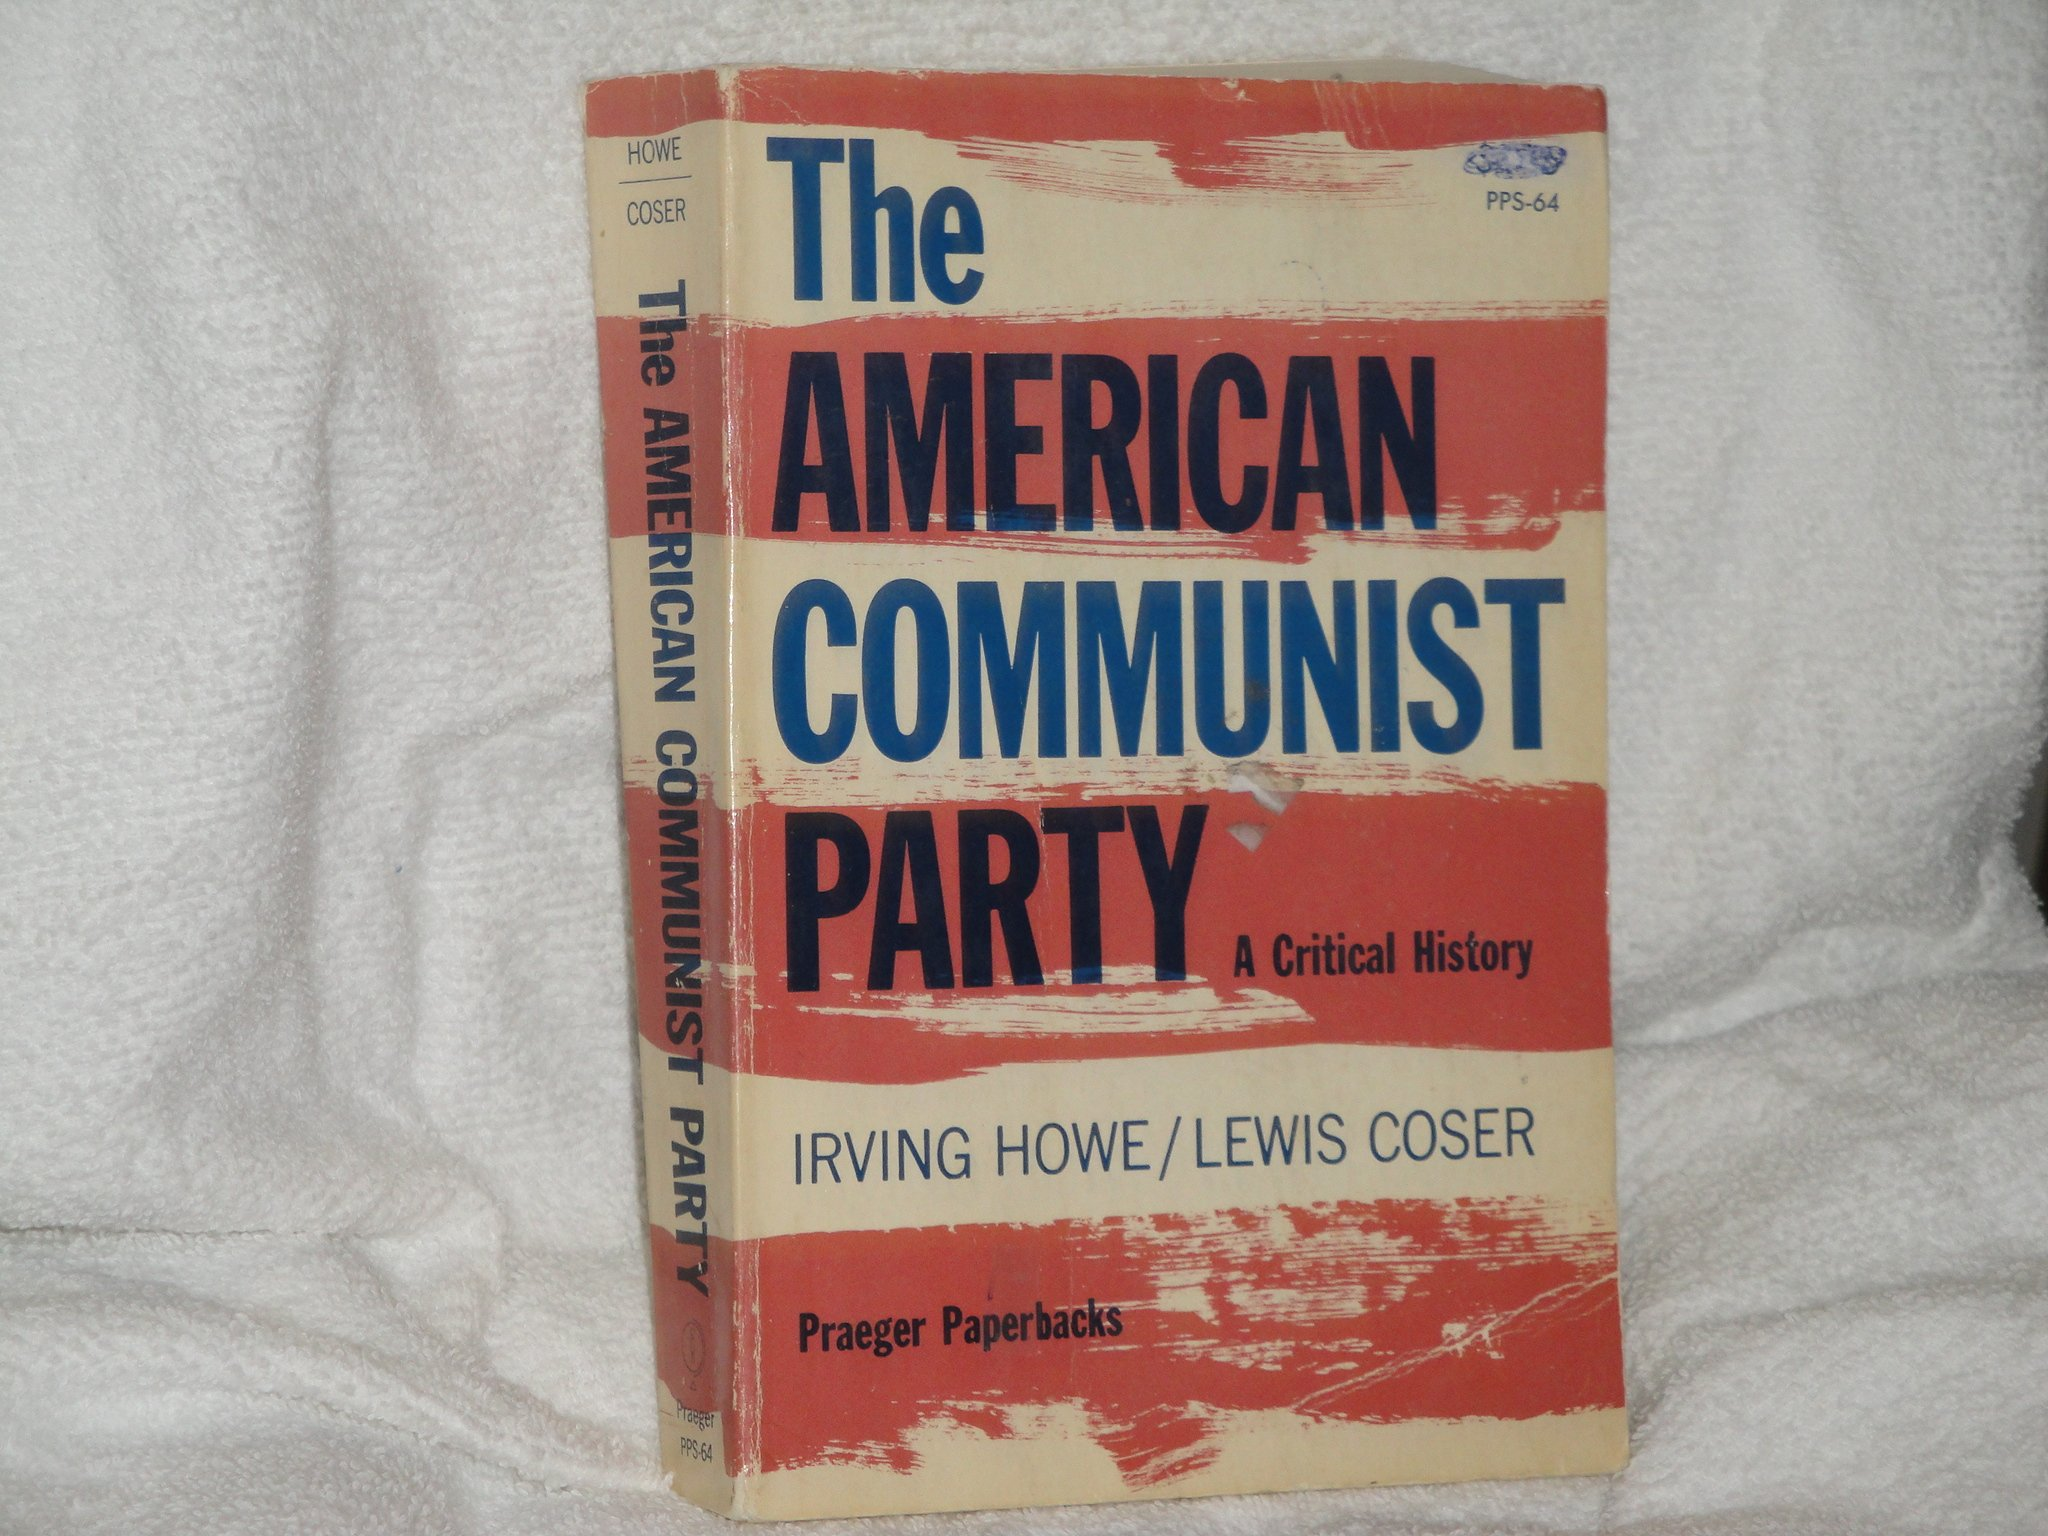 The American Communist Party: A Critical History Franklin D. Roosevelt & the era of the New Deal: Amazon.es: Howe, Irving, Coser, Lewis A.: Libros en idiomas extranjeros